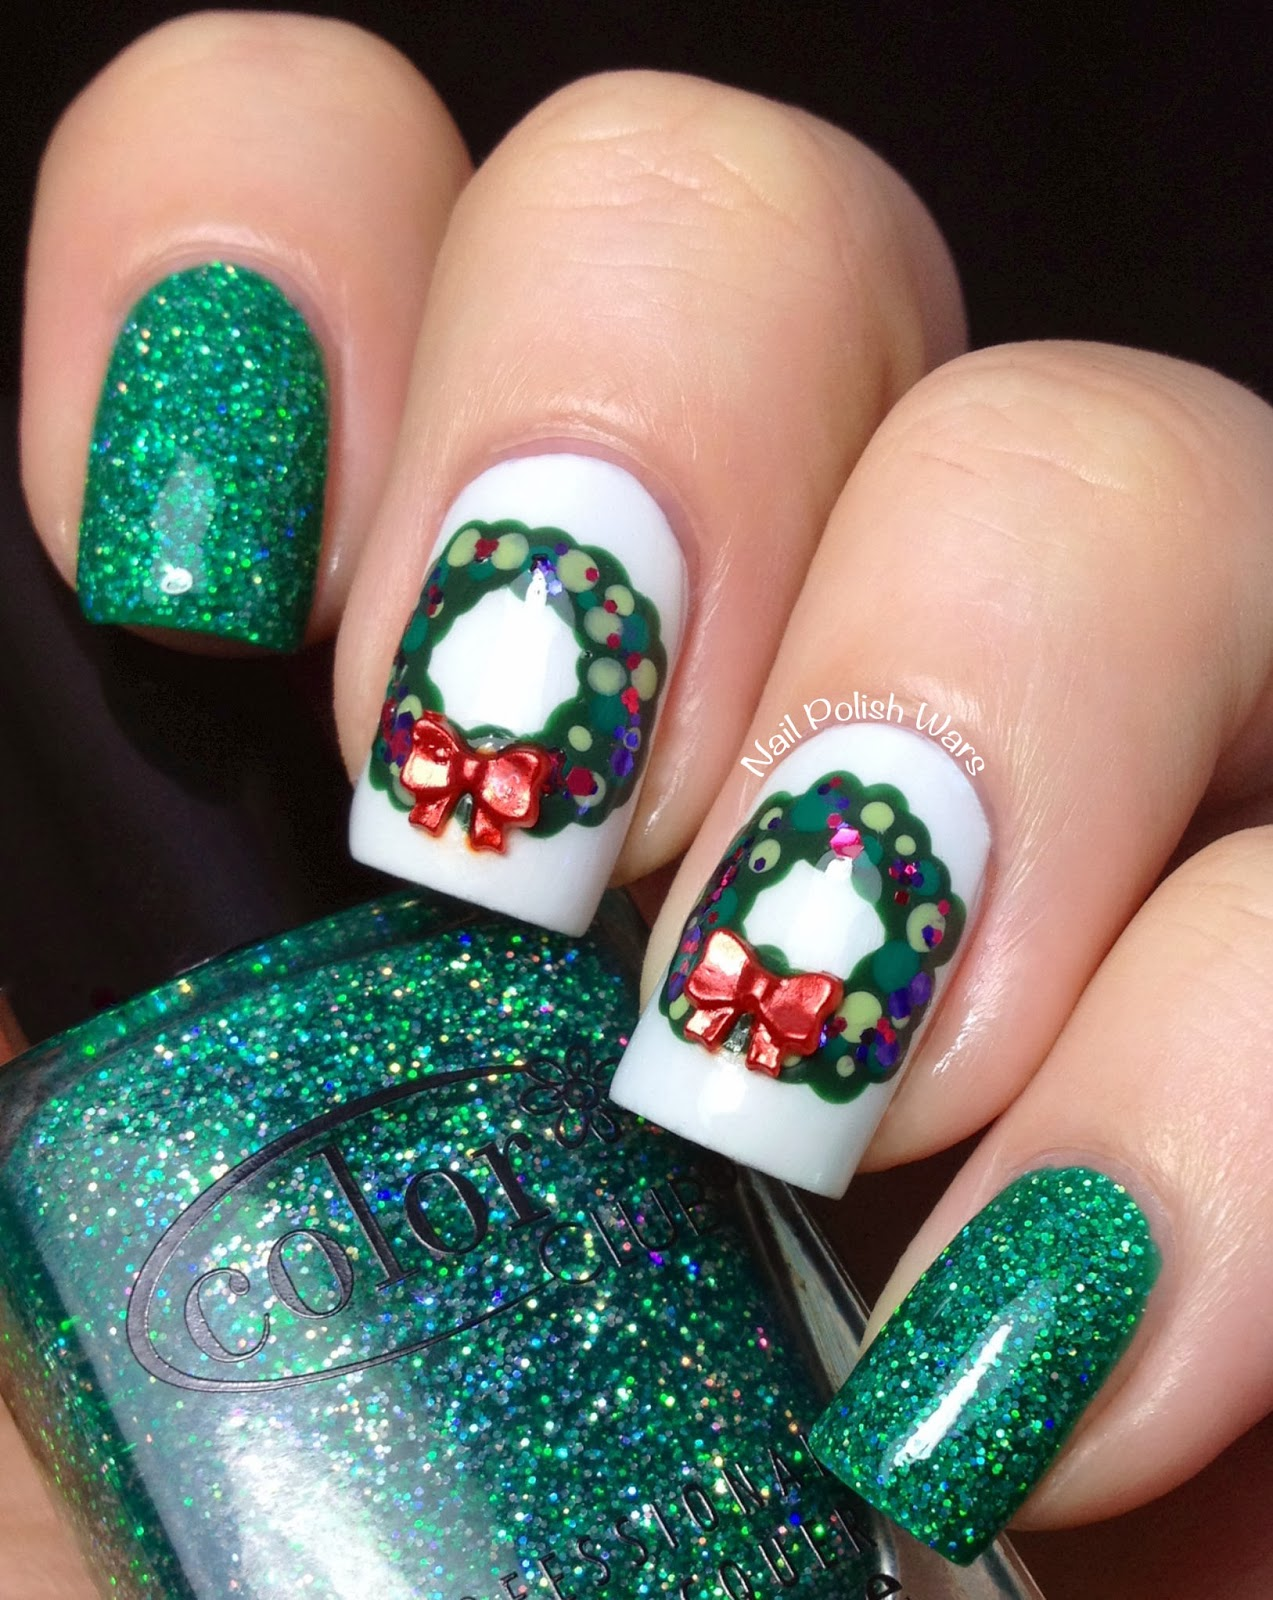 Nail polish wars if you like it then you should have put a wreath thursday december 19 2013 prinsesfo Image collections